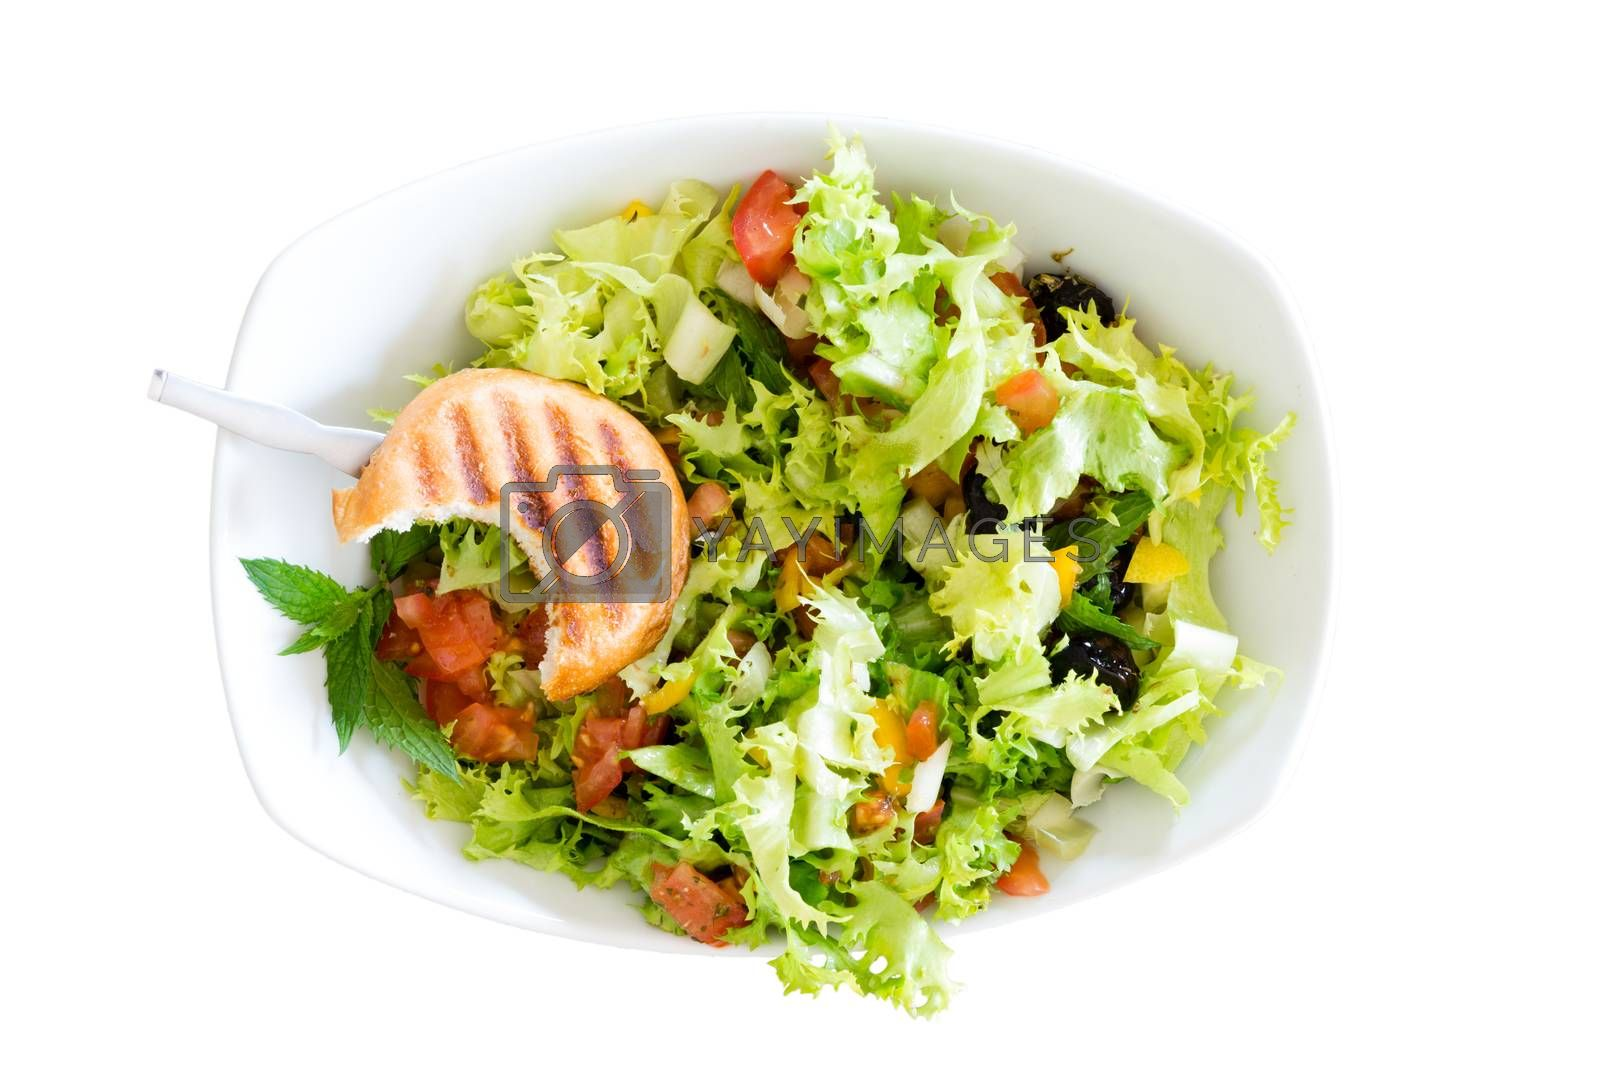 Royalty free image of Fresh salad with a bitten toasted bun by coskun